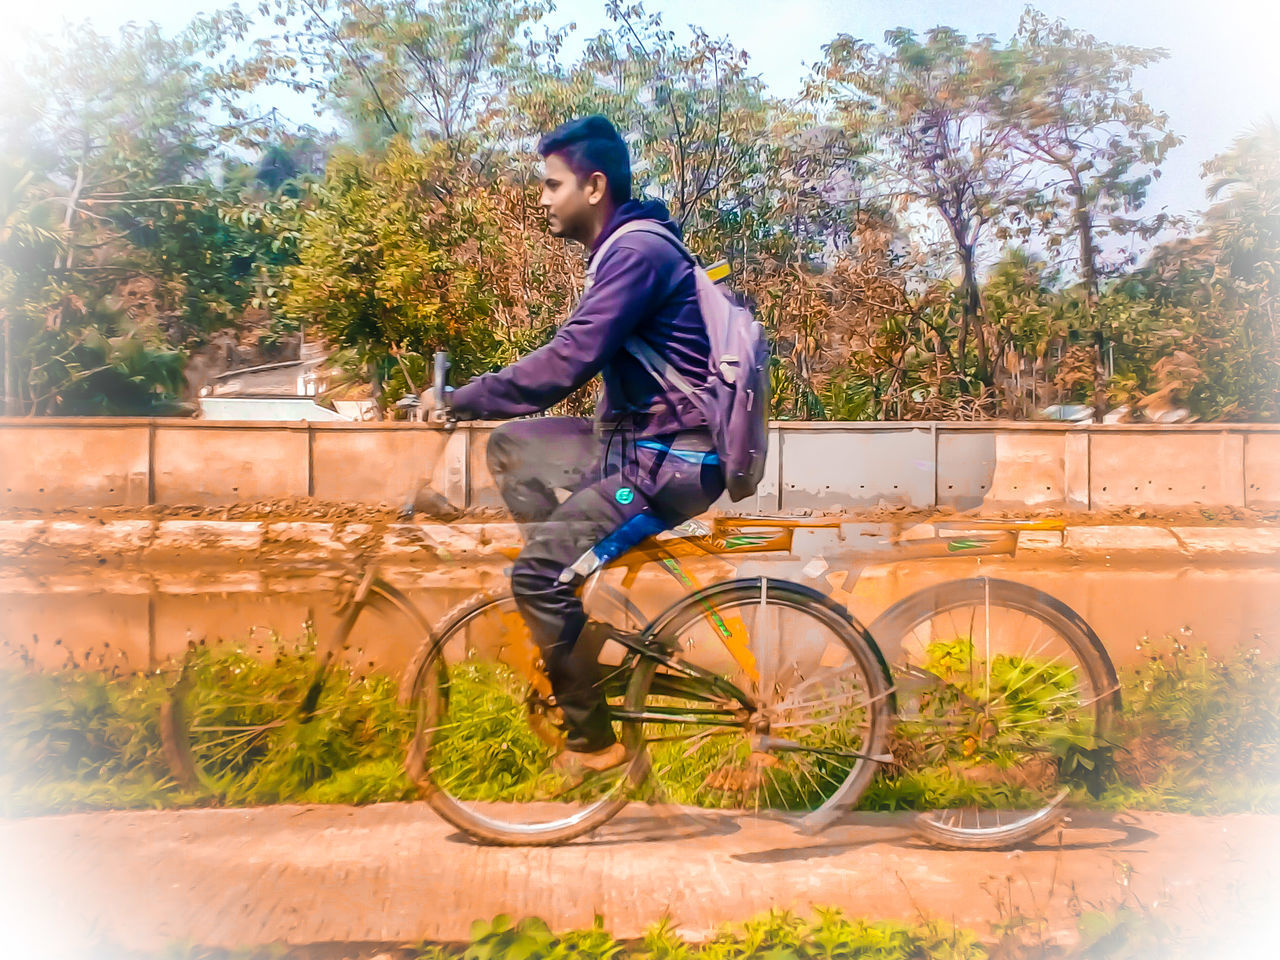 bicycle, full length, transportation, young adult, outdoors, tree, one person, cycling, mode of transport, lifestyles, real people, young men, casual clothing, side view, road, day, nature, young women, people